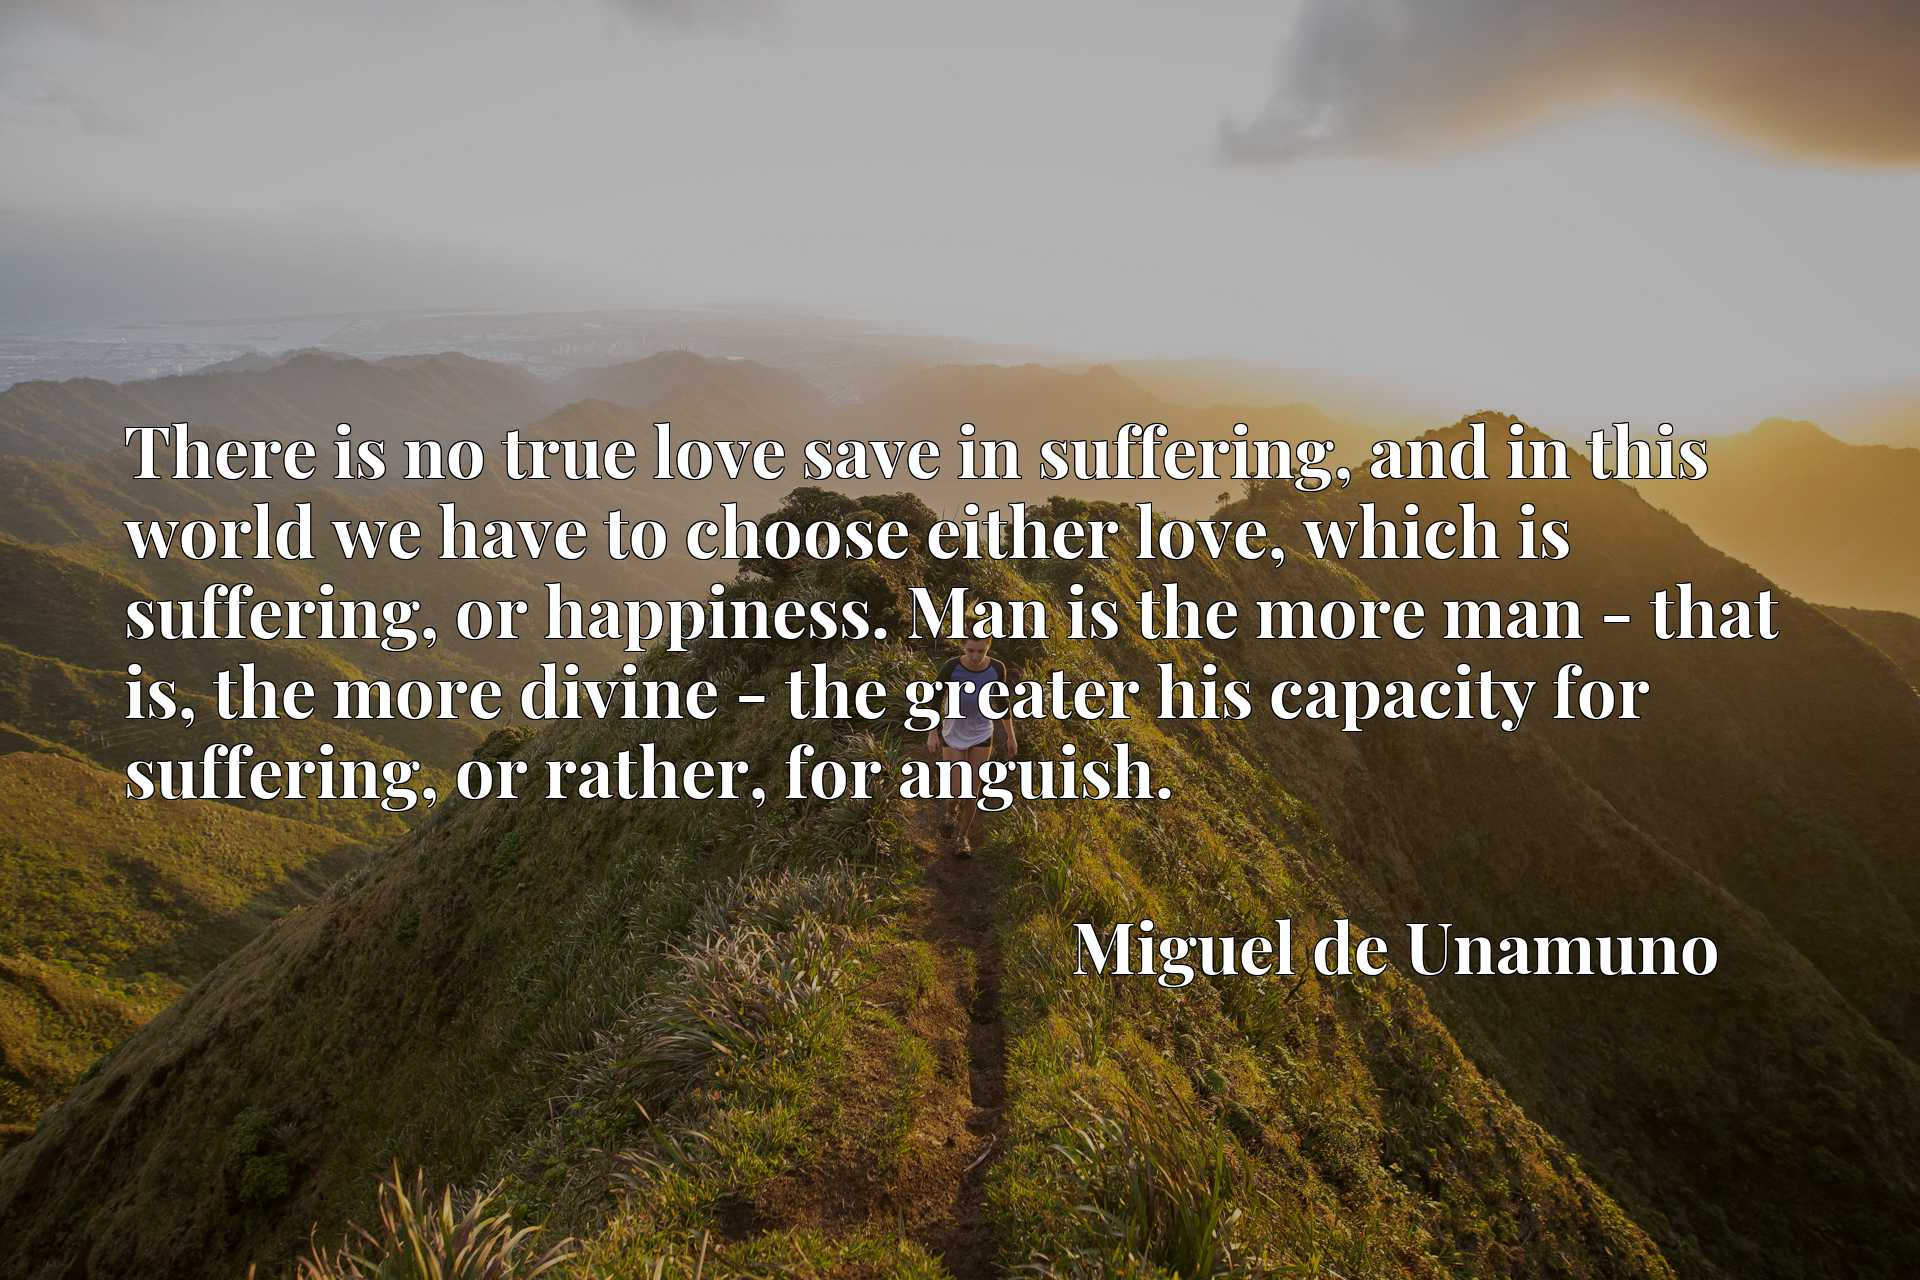 There is no true love save in suffering, and in this world we have to choose either love, which is suffering, or happiness. Man is the more man - that is, the more divine - the greater his capacity for suffering, or rather, for anguish.